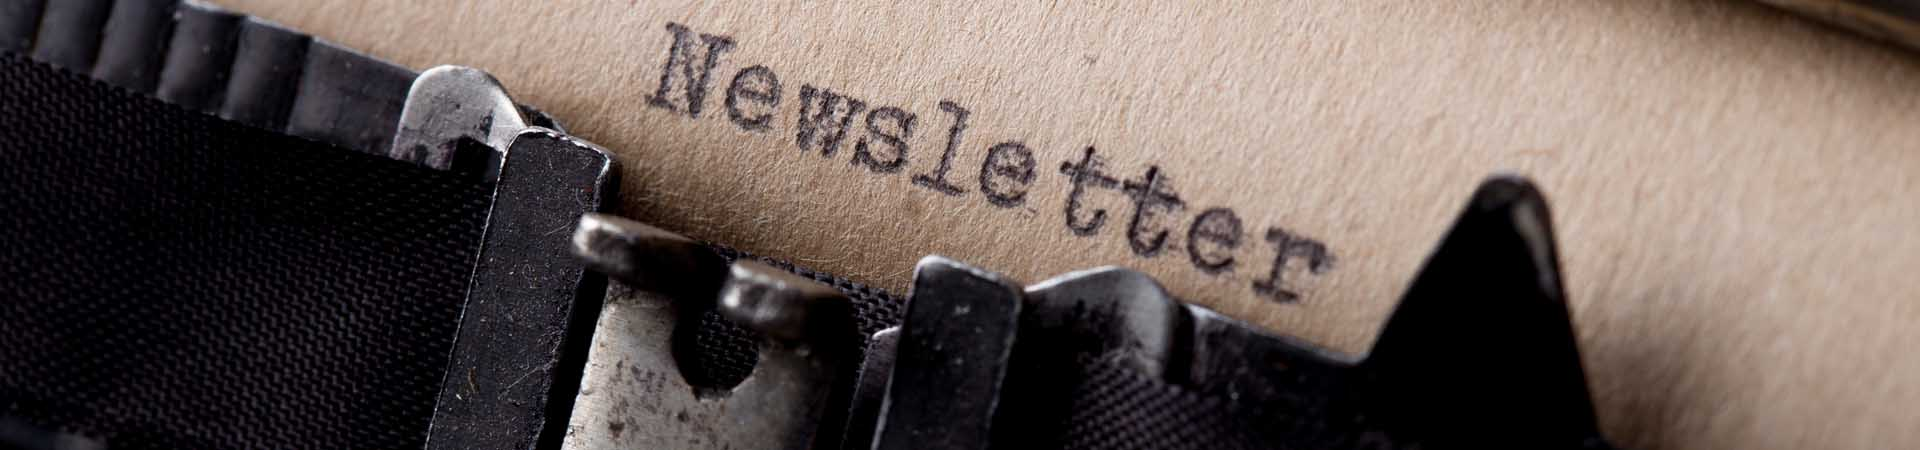 Newsletter – Registrierung